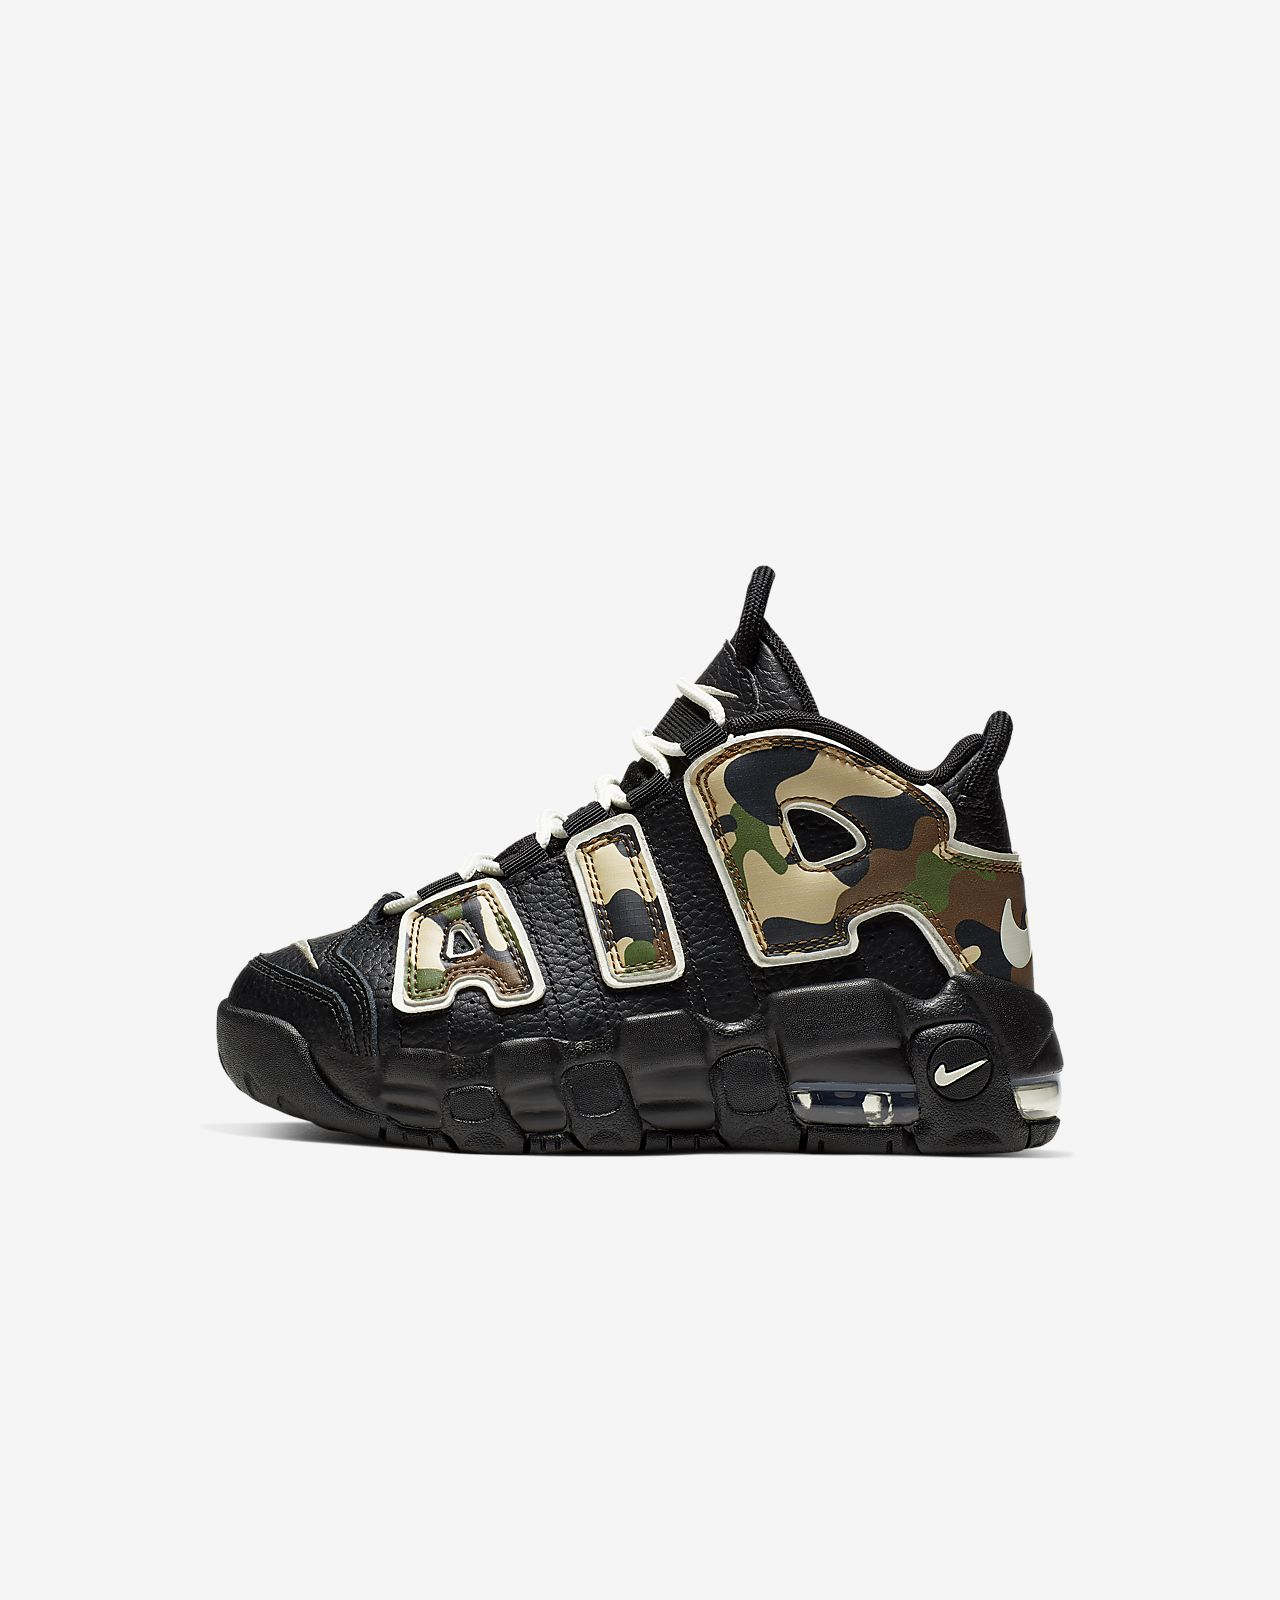 Nike Air More Uptempo QS (PS) 幼童运动童鞋